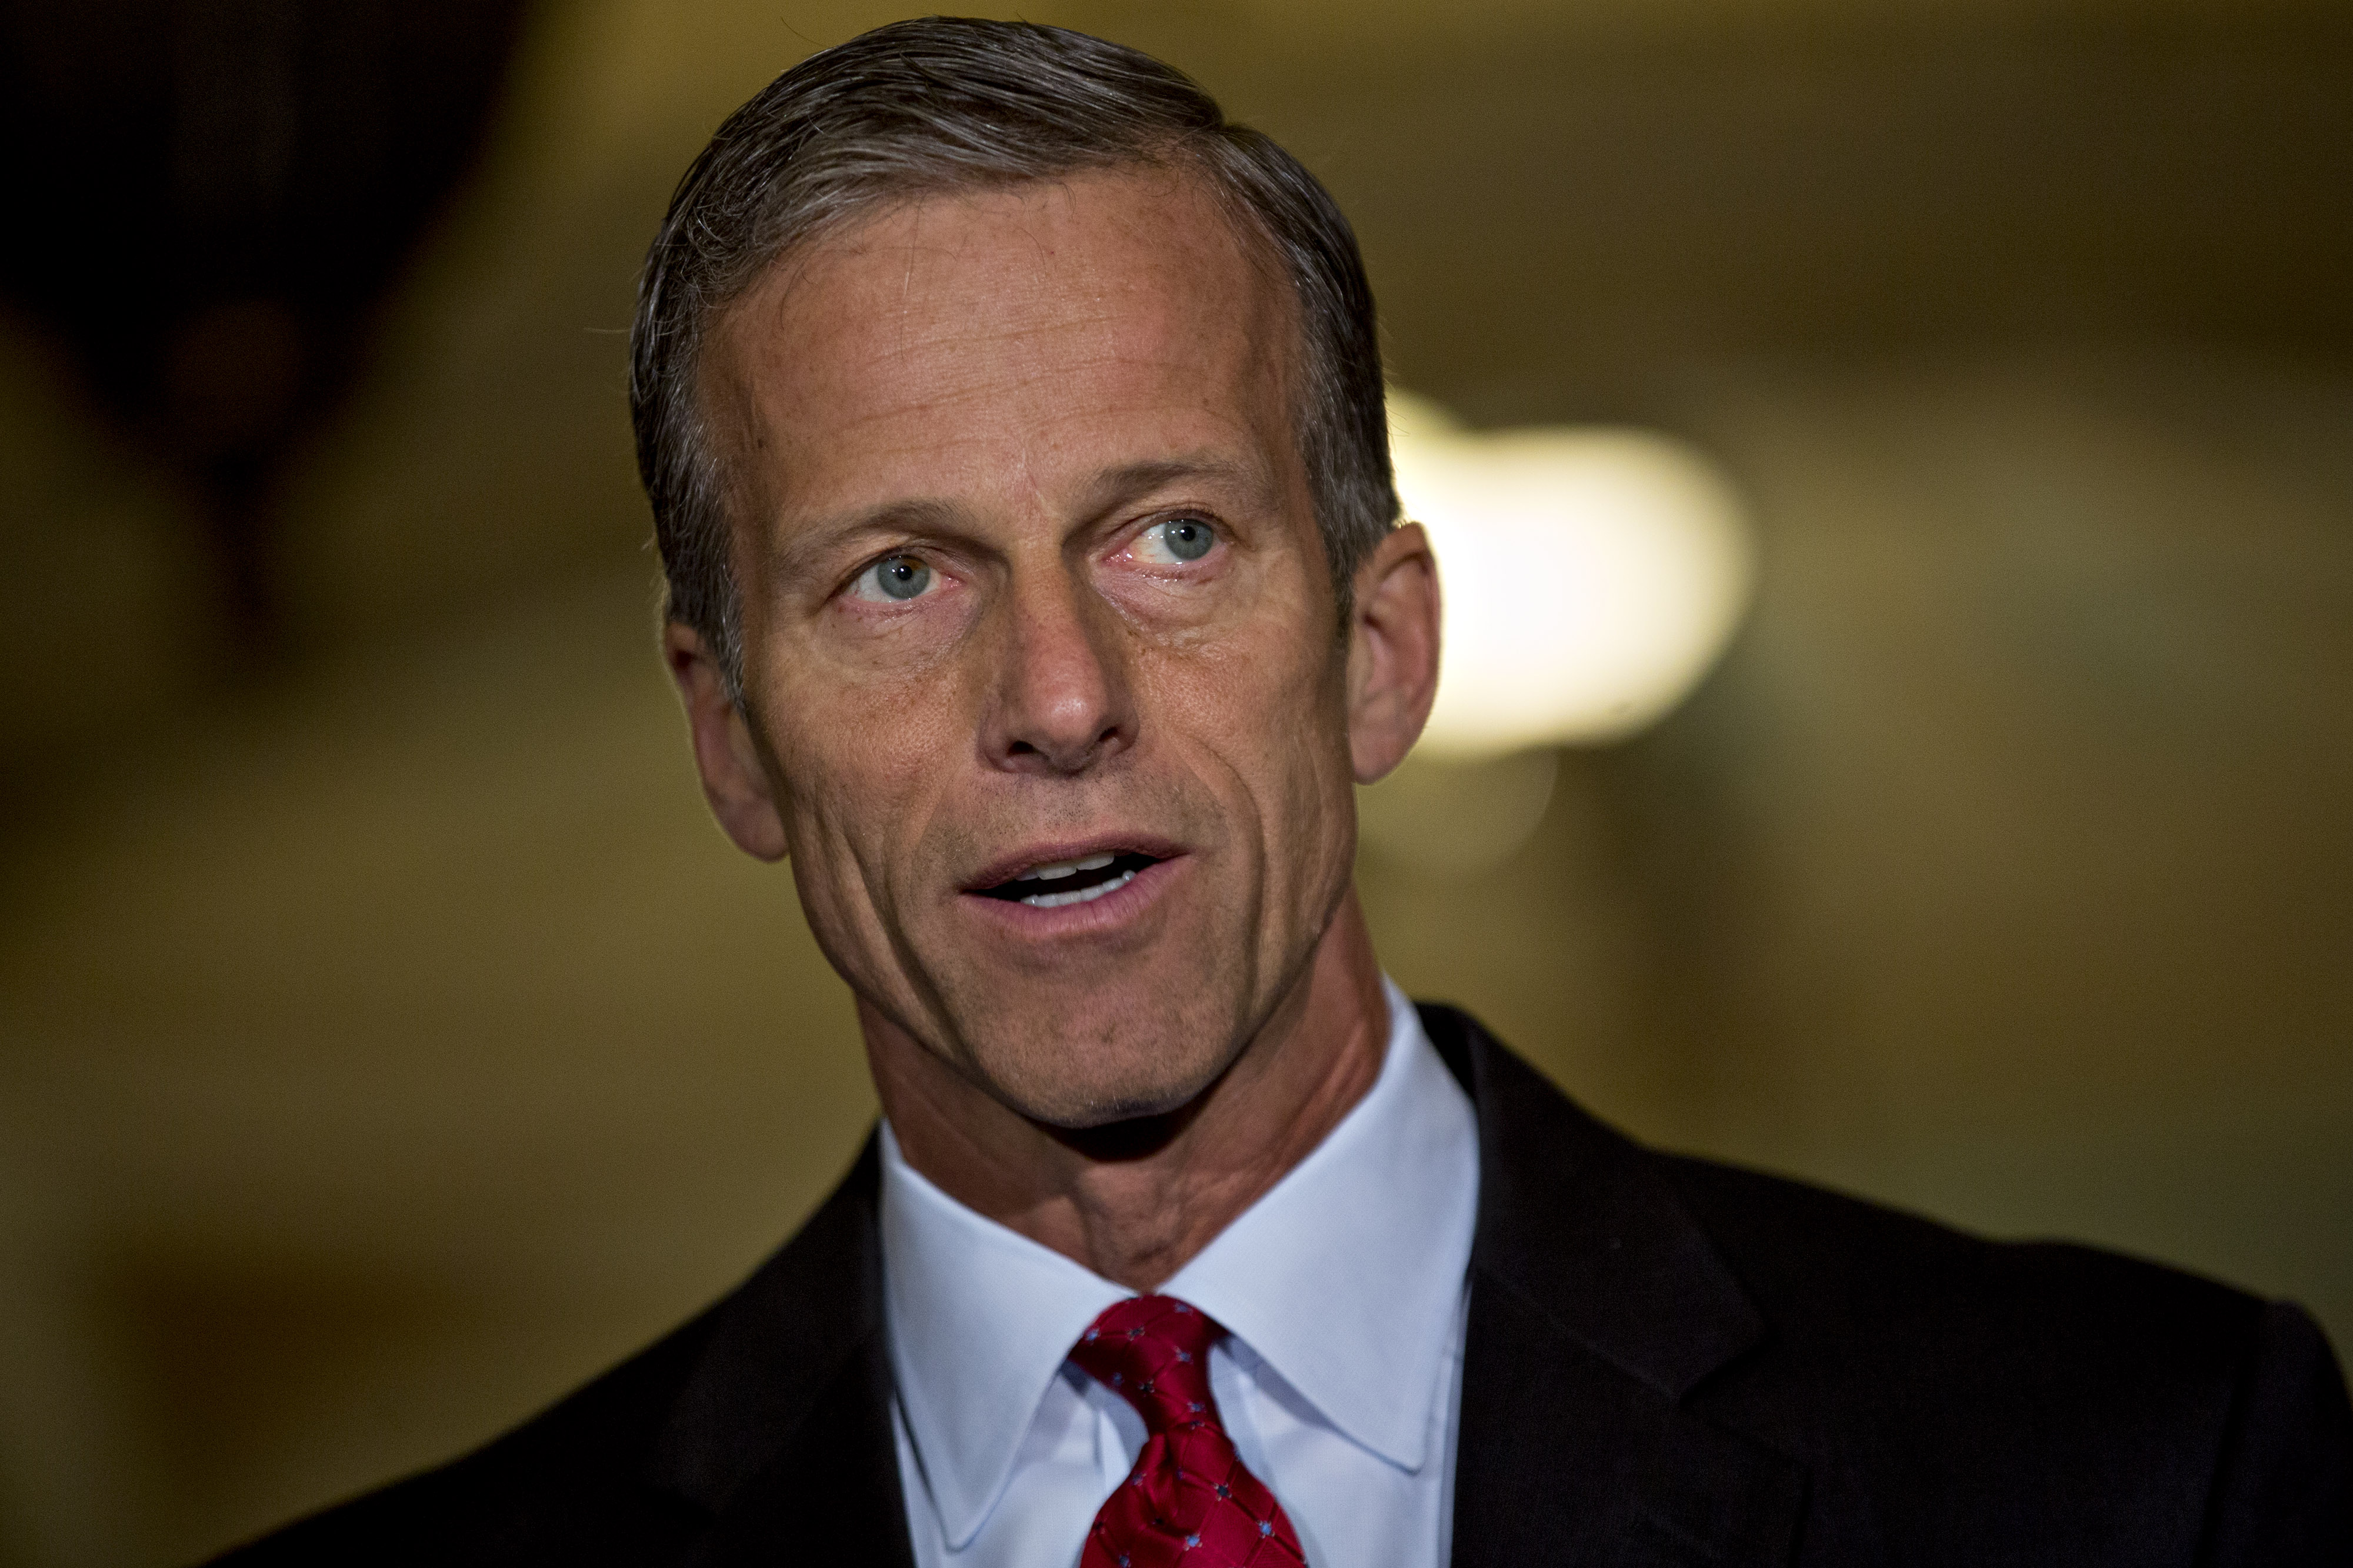 Sen. John Thune, a Republican from South Dakota, speaks to members of the media after a Senate luncheon meeting at the U.S. Capitol in Washington, D.C., on May 10.